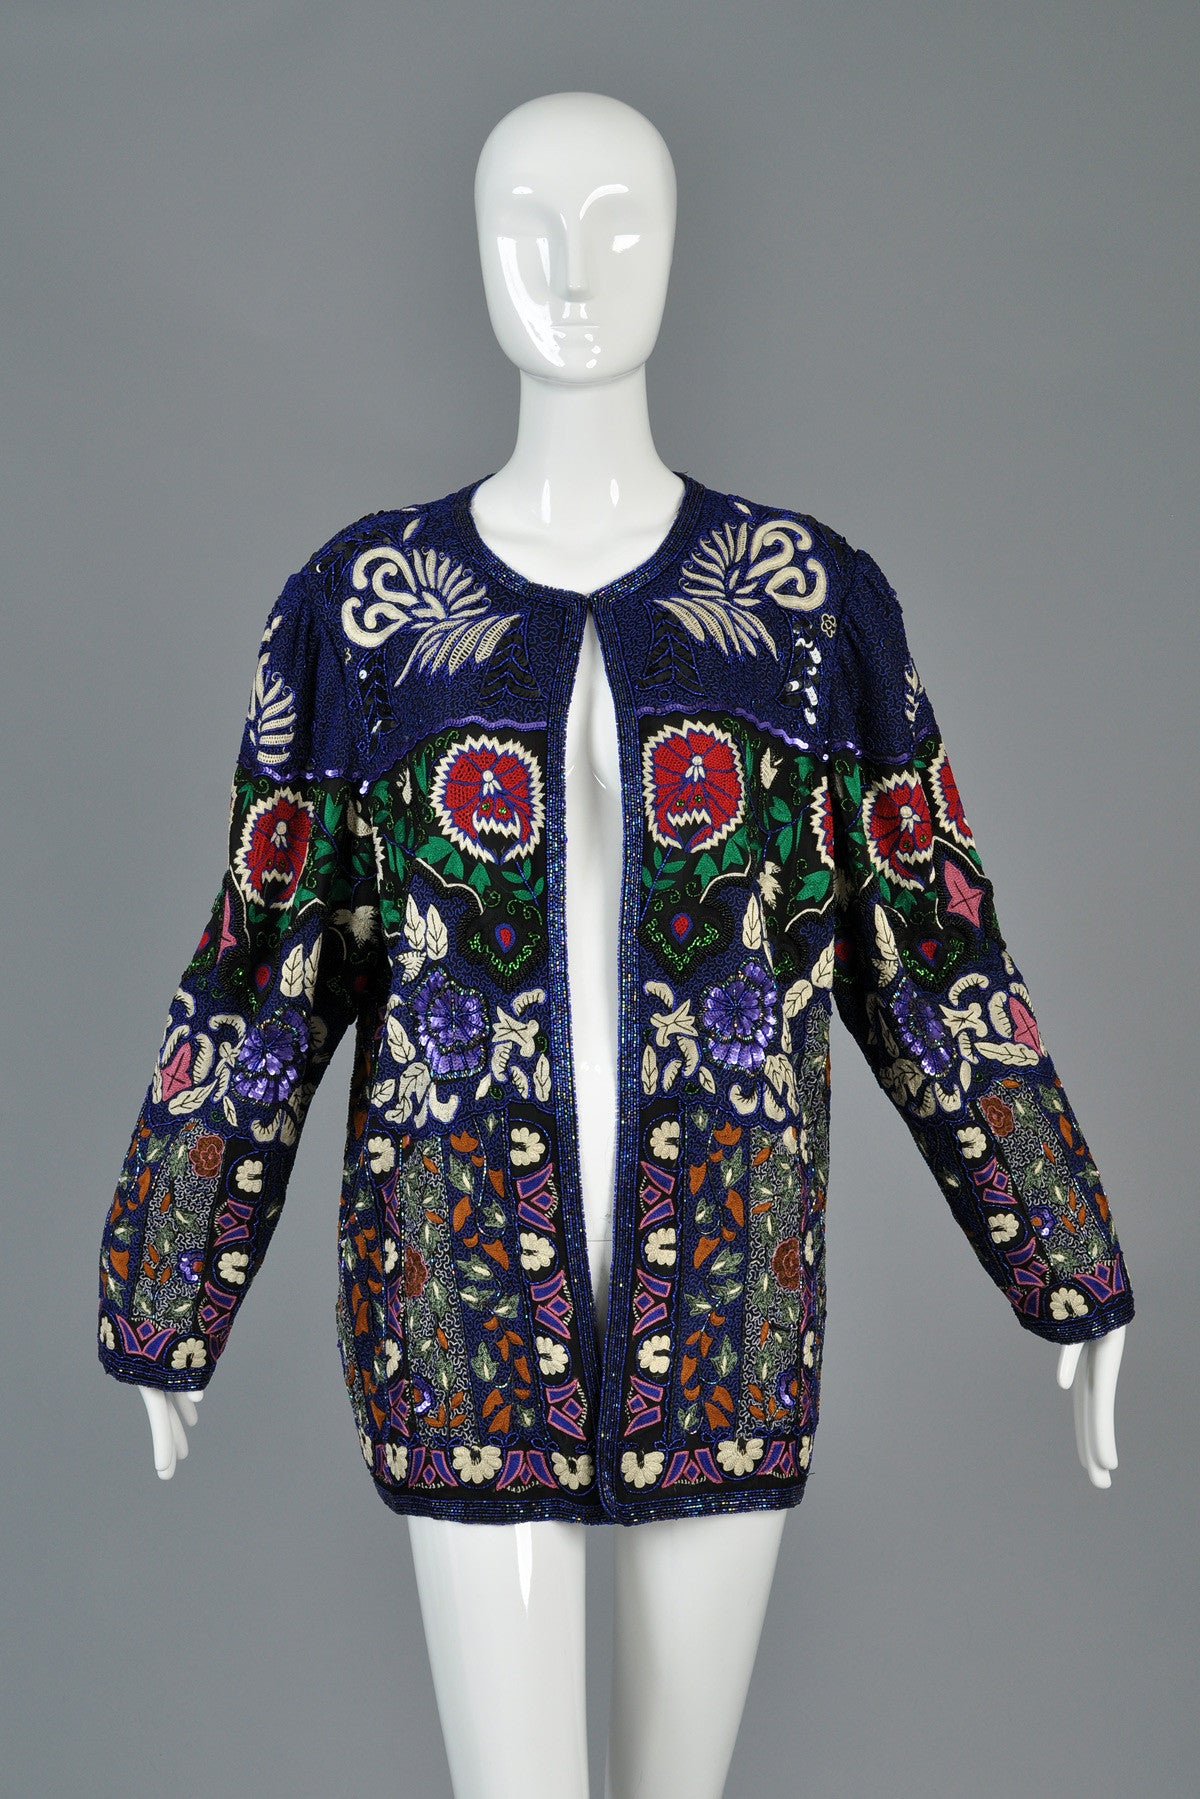 Embroidered Beaded Art Nouveau Inspired Silk Jacket